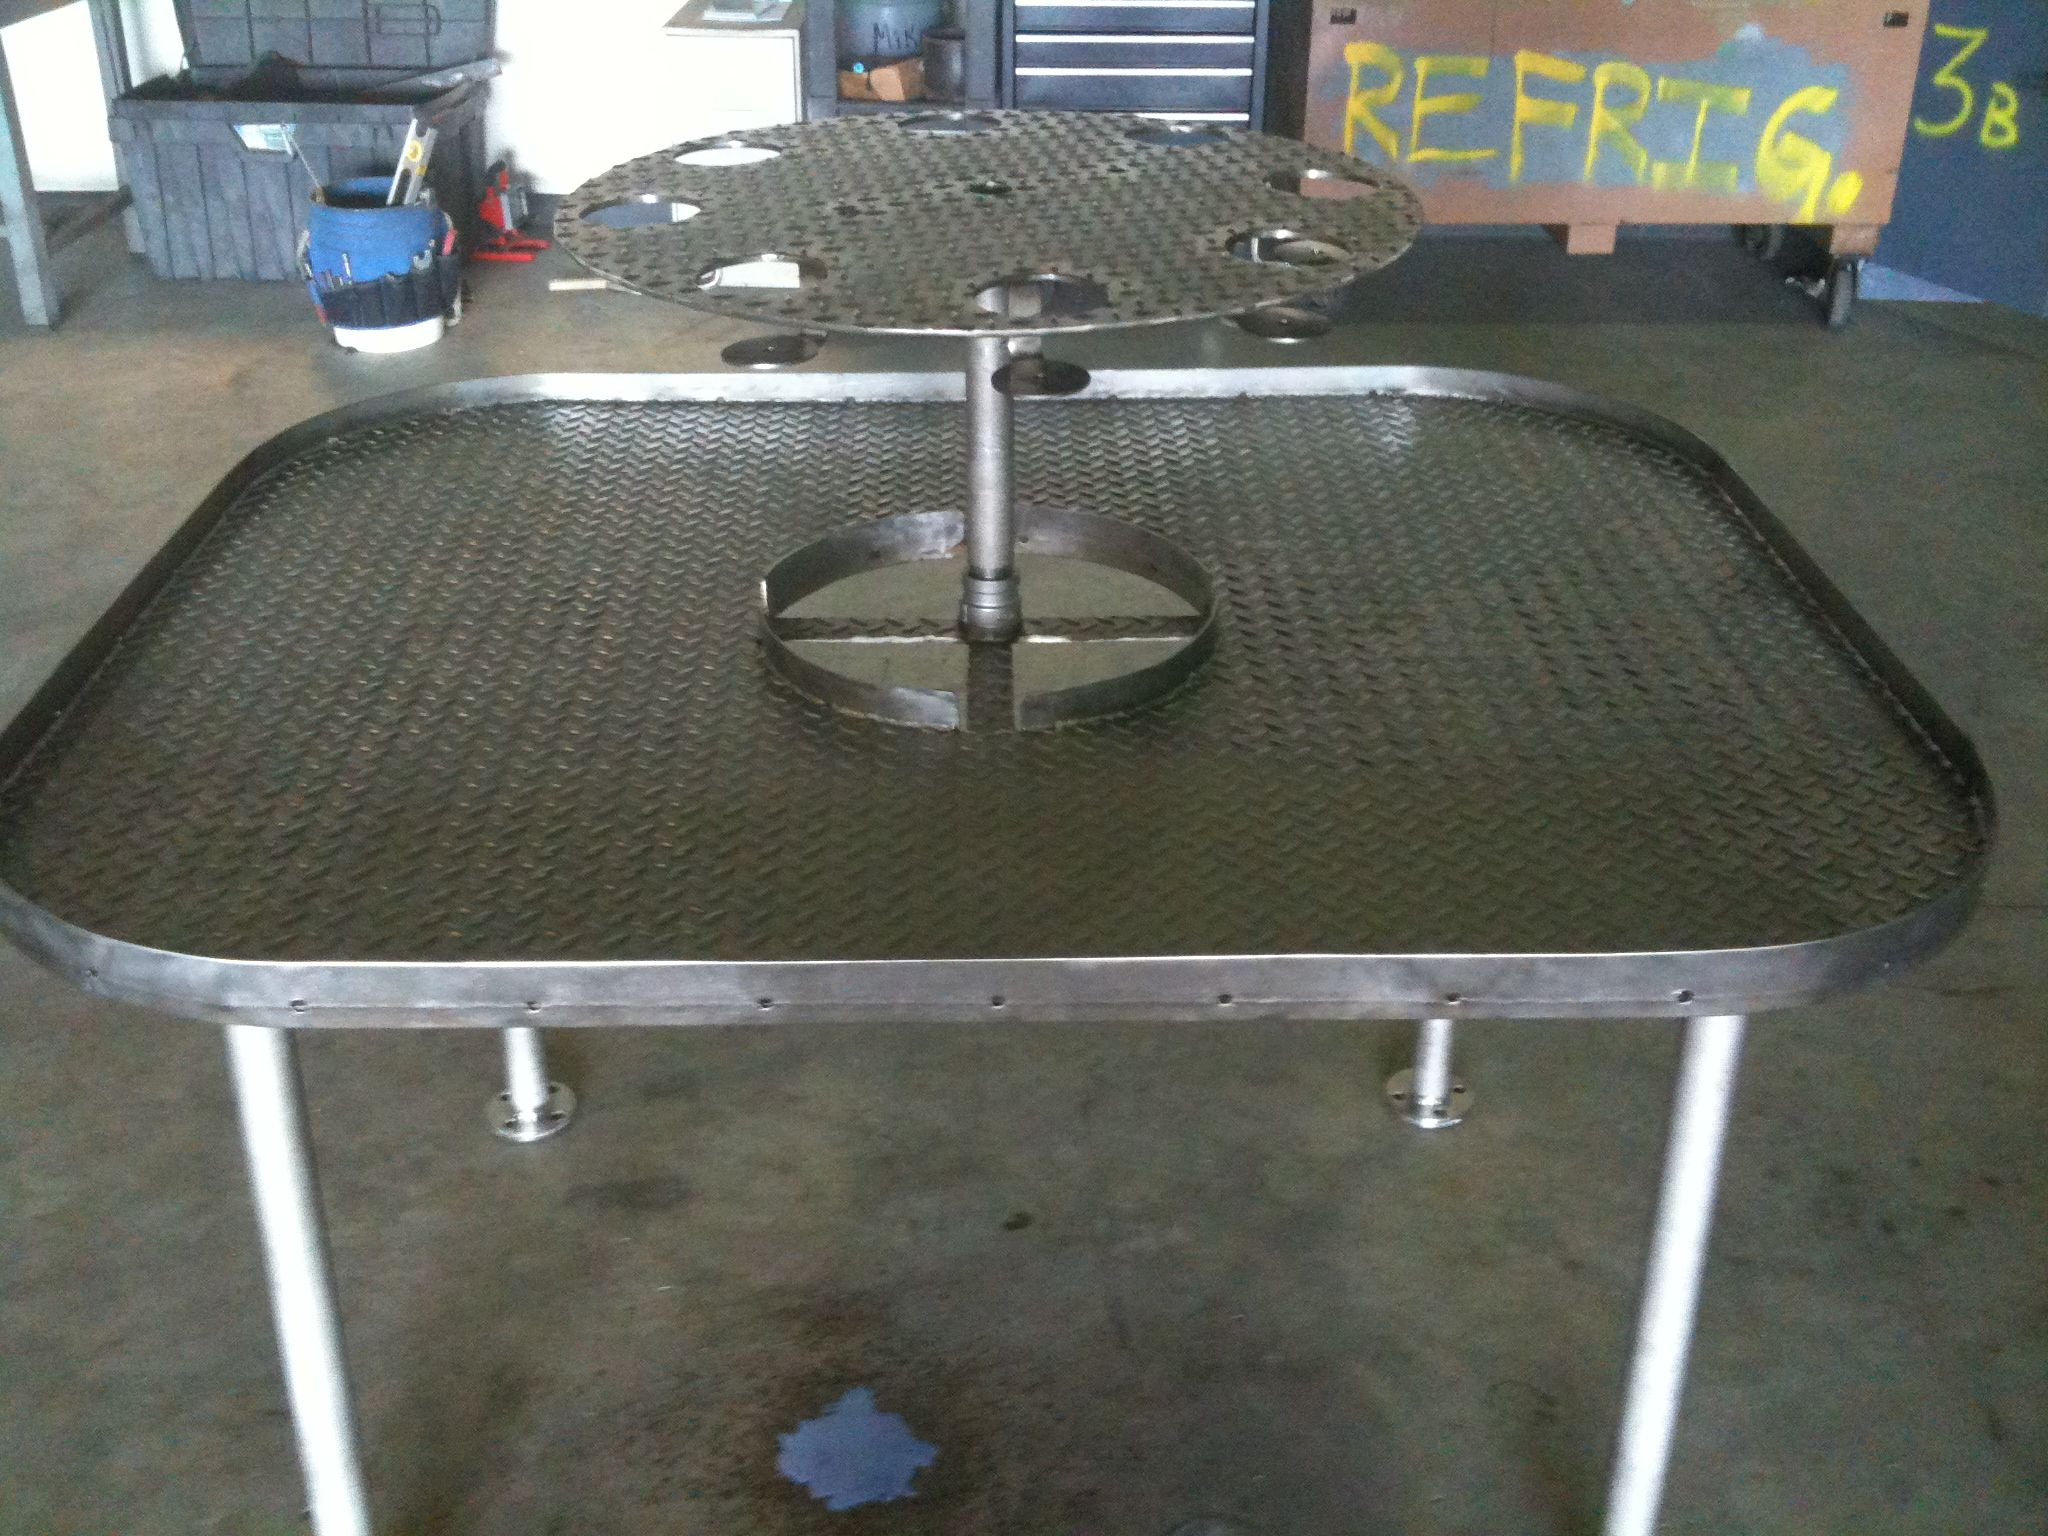 This new fish cleaning station was built in 2010 the stainless steel - All Stainless Steel Crawfish Table